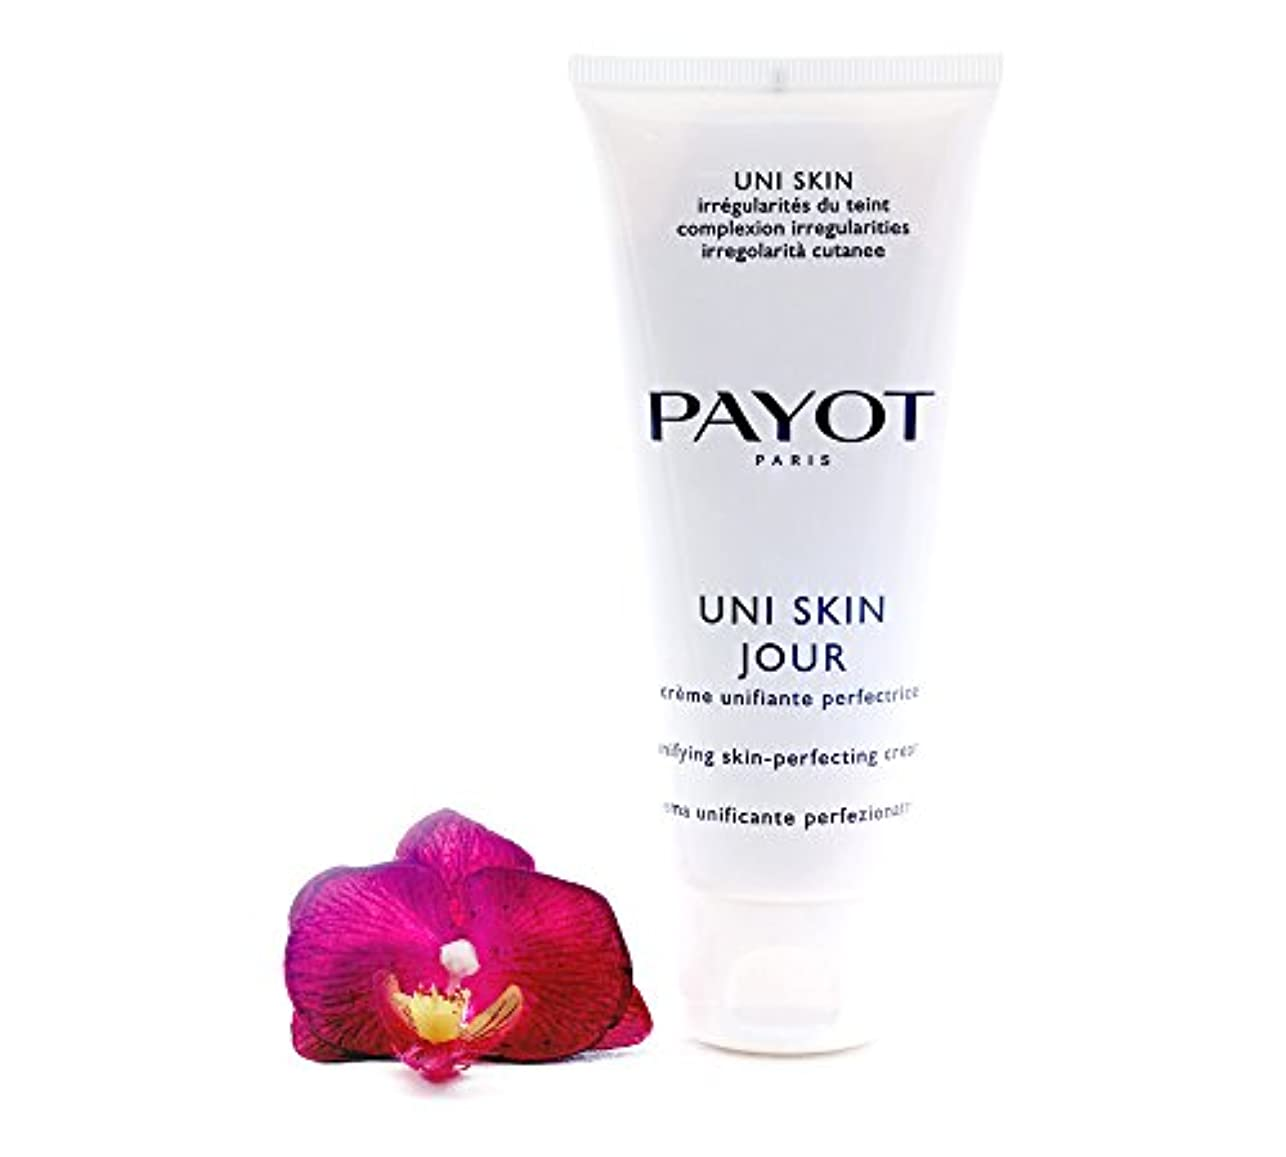 パイヨ Uni Skin Jour Unifying Skin-Perfecting Cream (Salon Size) 100ml/3.3oz並行輸入品